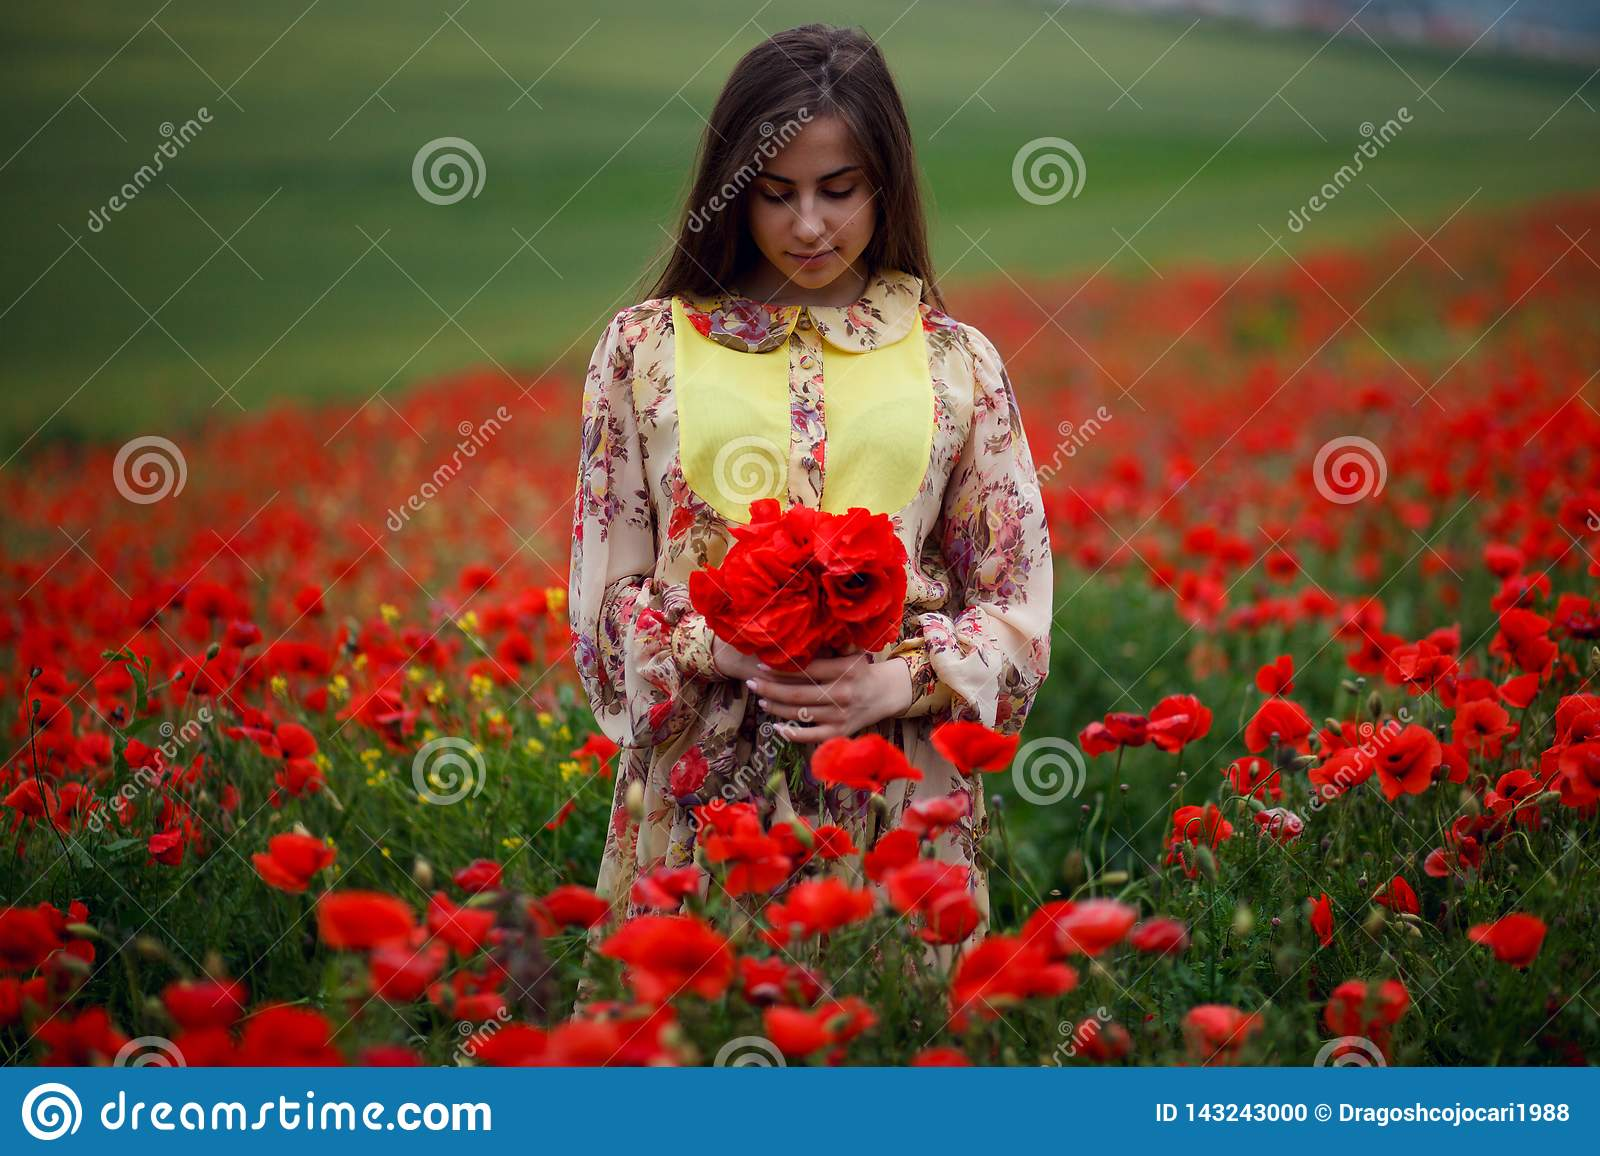 Handsome girl wearing in summer floral dress, seated in poppies field, holdings a bouquet of flowers, looks down